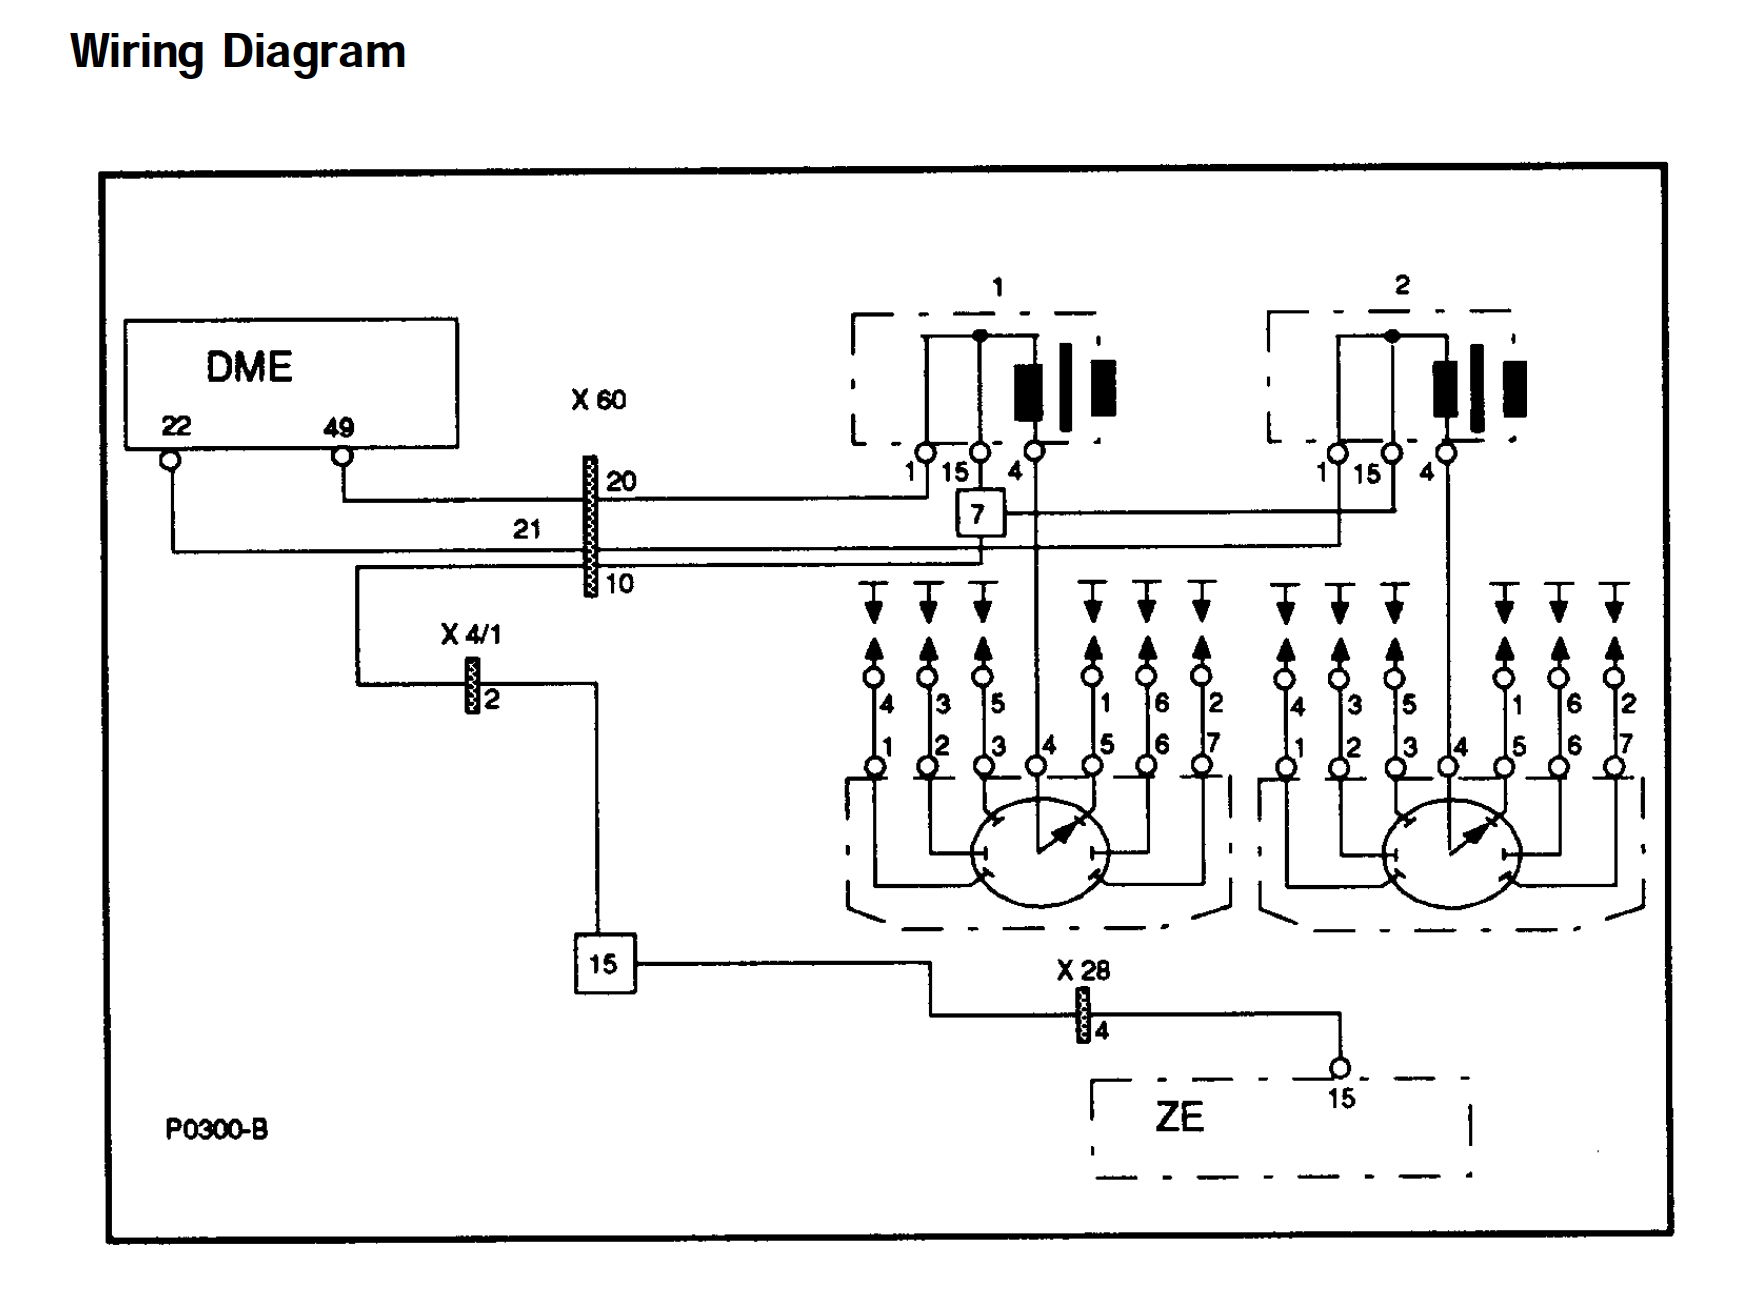 Heater Wiring Diagram For 98 Oldsmobile Diagrams 1950 1998 Cutl Engine 1959